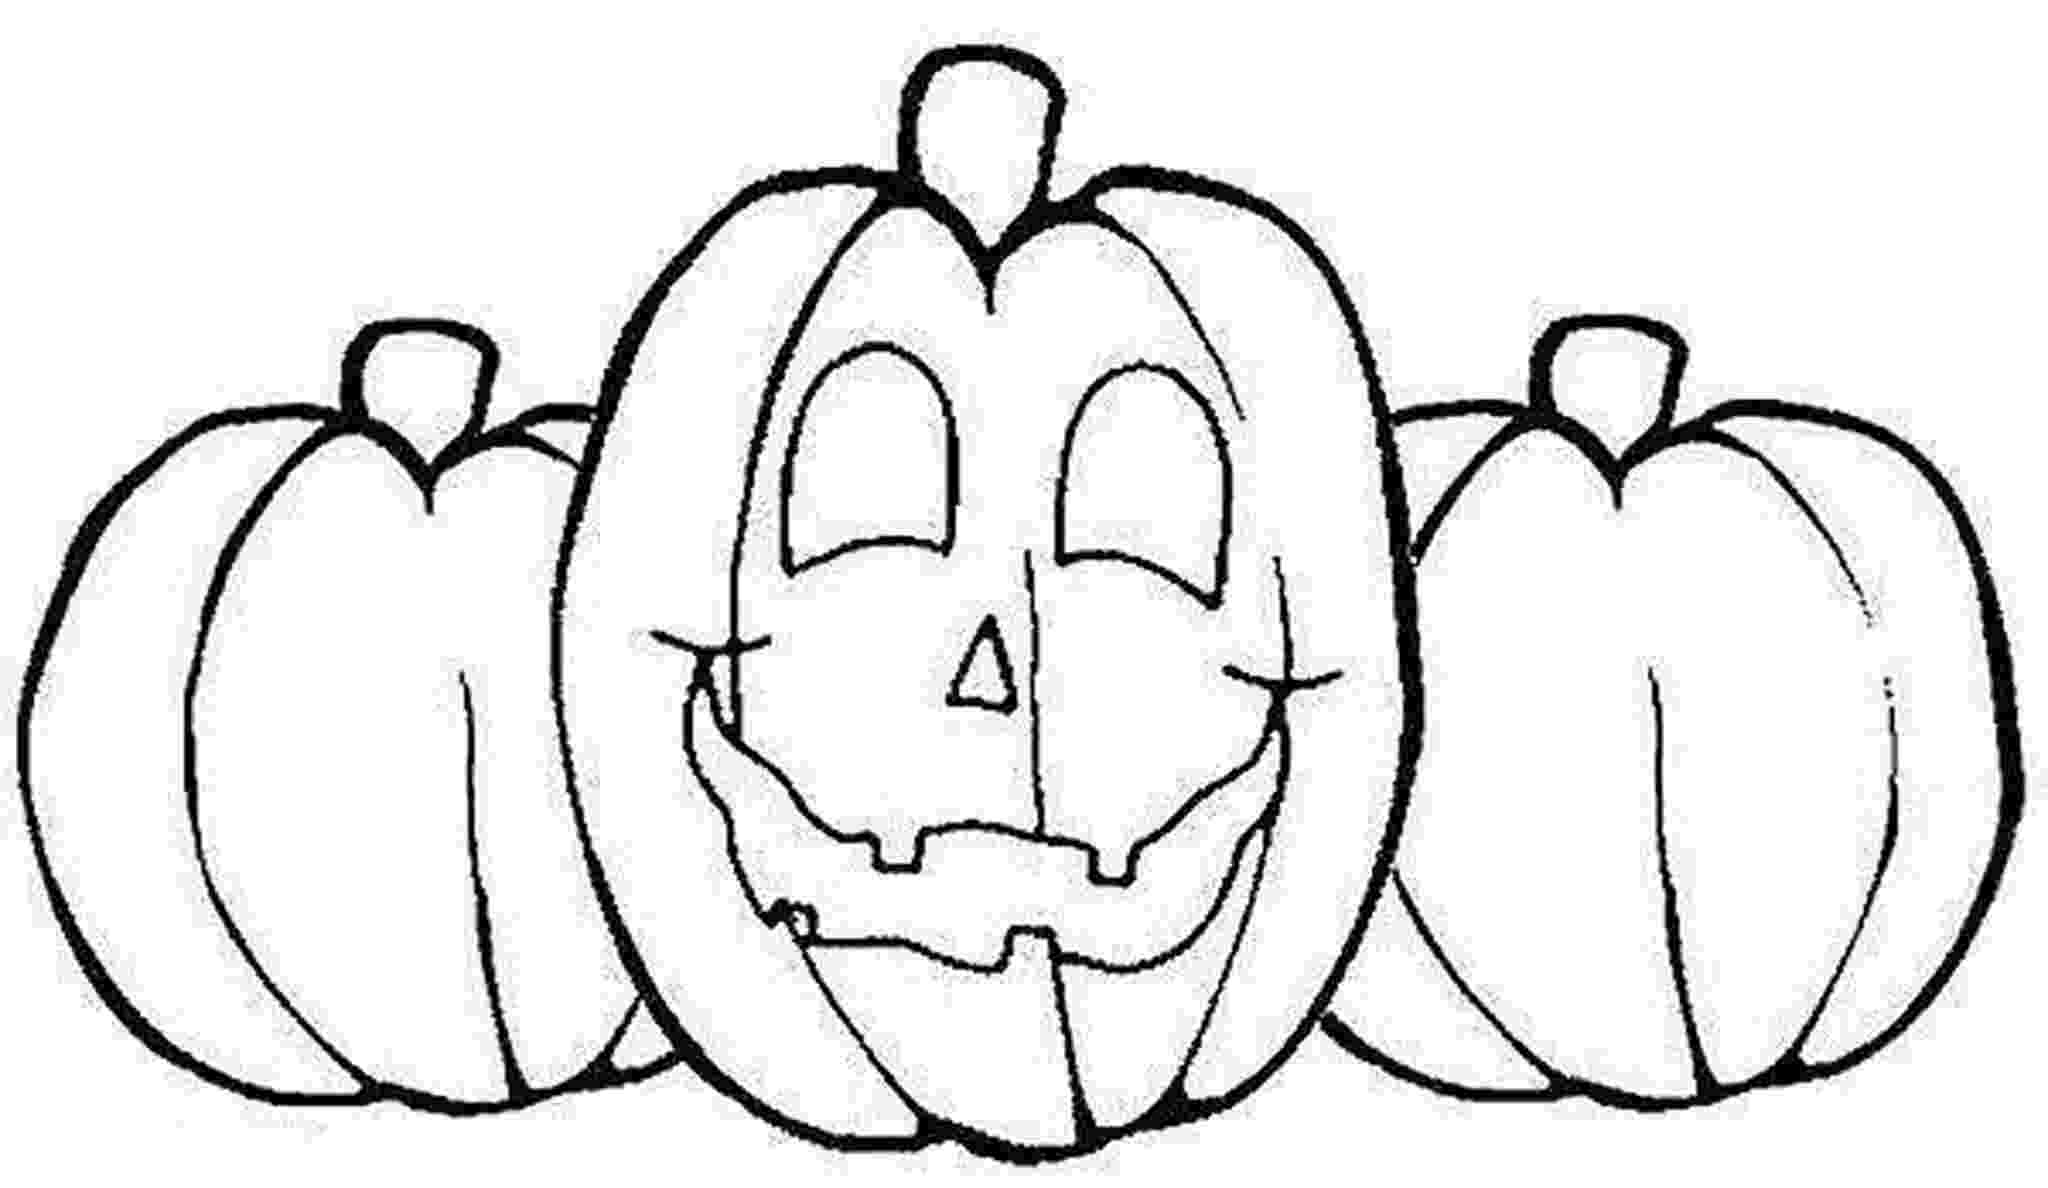 pumpkin colouring sheet holiday coloring pages momjunction sheet pumpkin colouring